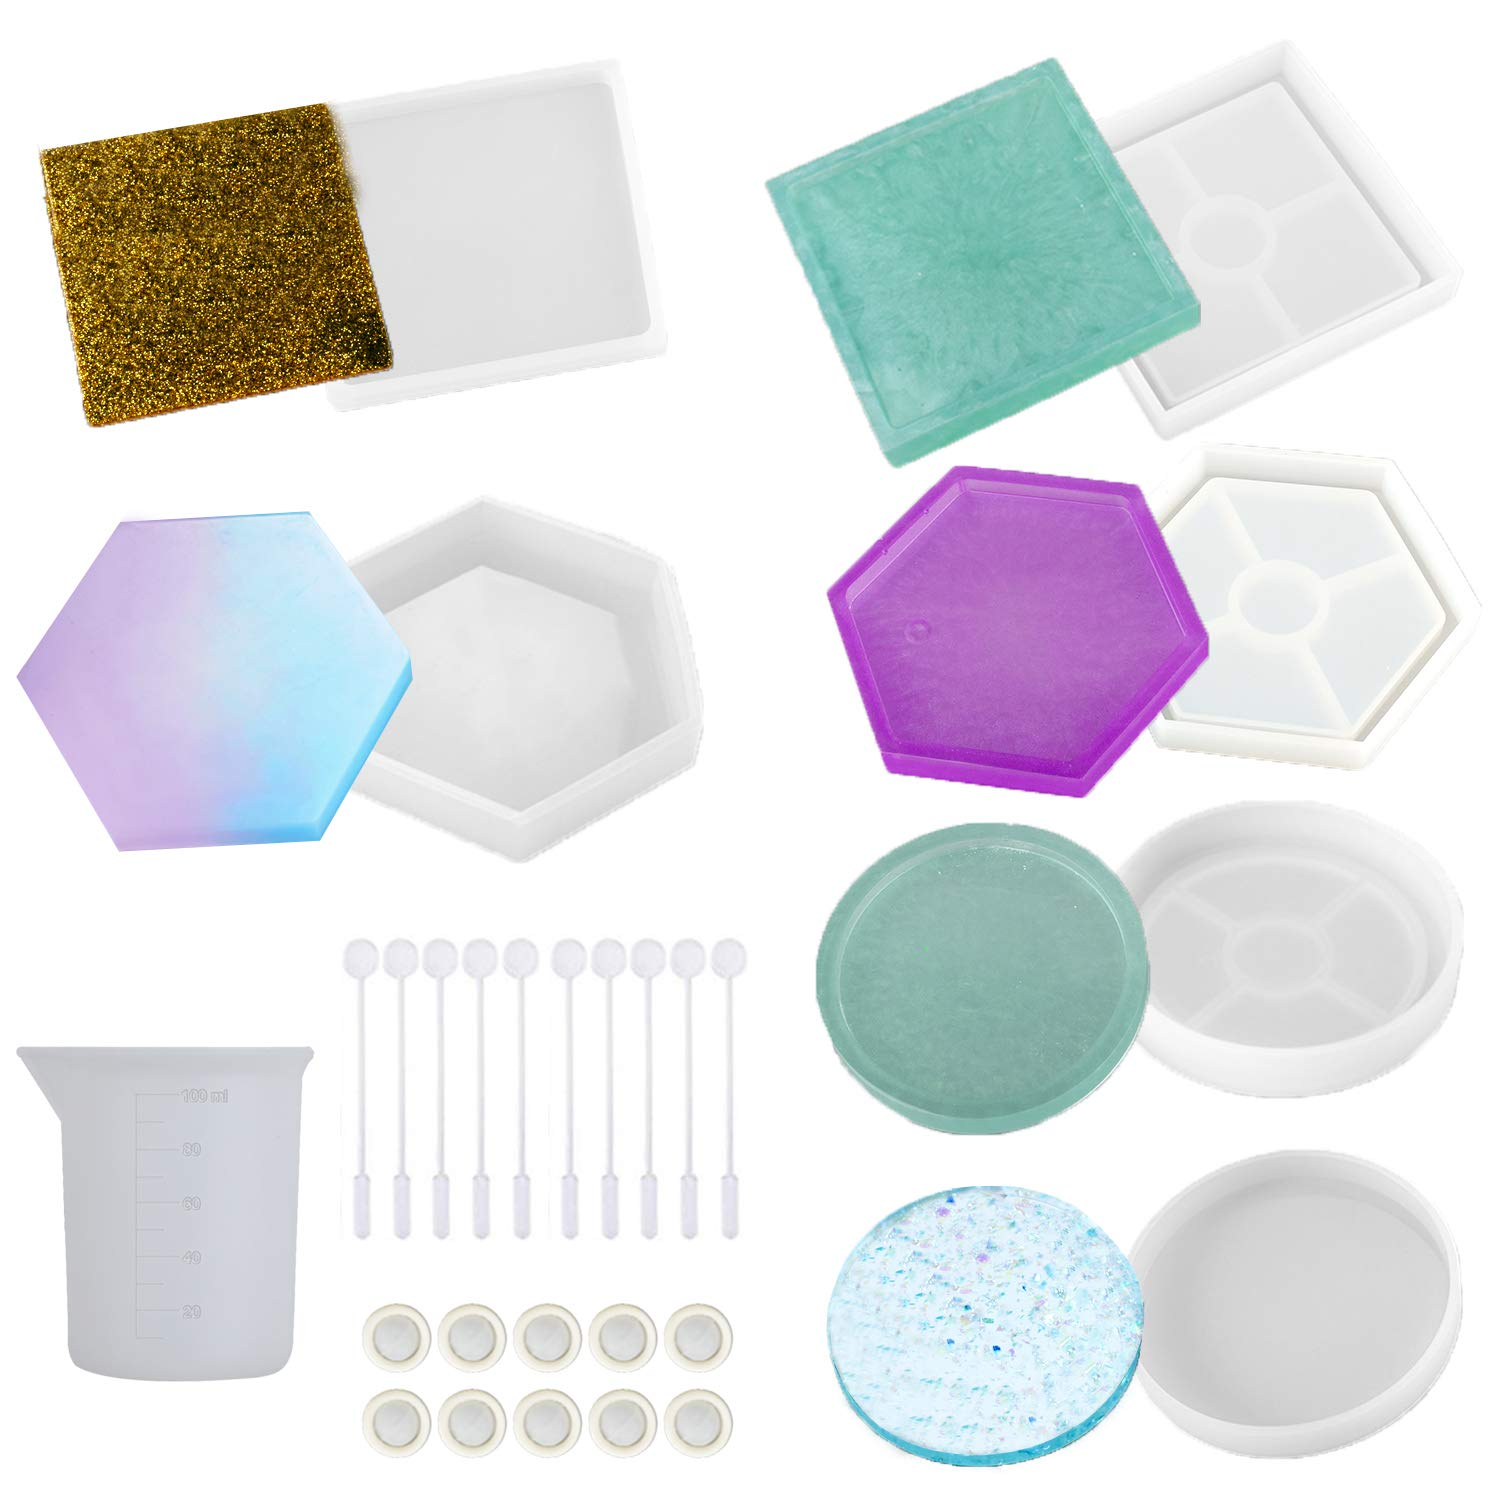 Resin Molds for Coasters,6 Pack Silicone Molds Kit for Casting Epoxy Resin UV Resin,Include Round, Hexagon and Square,with Resin Mixing and Measuring Tools by MoldResining